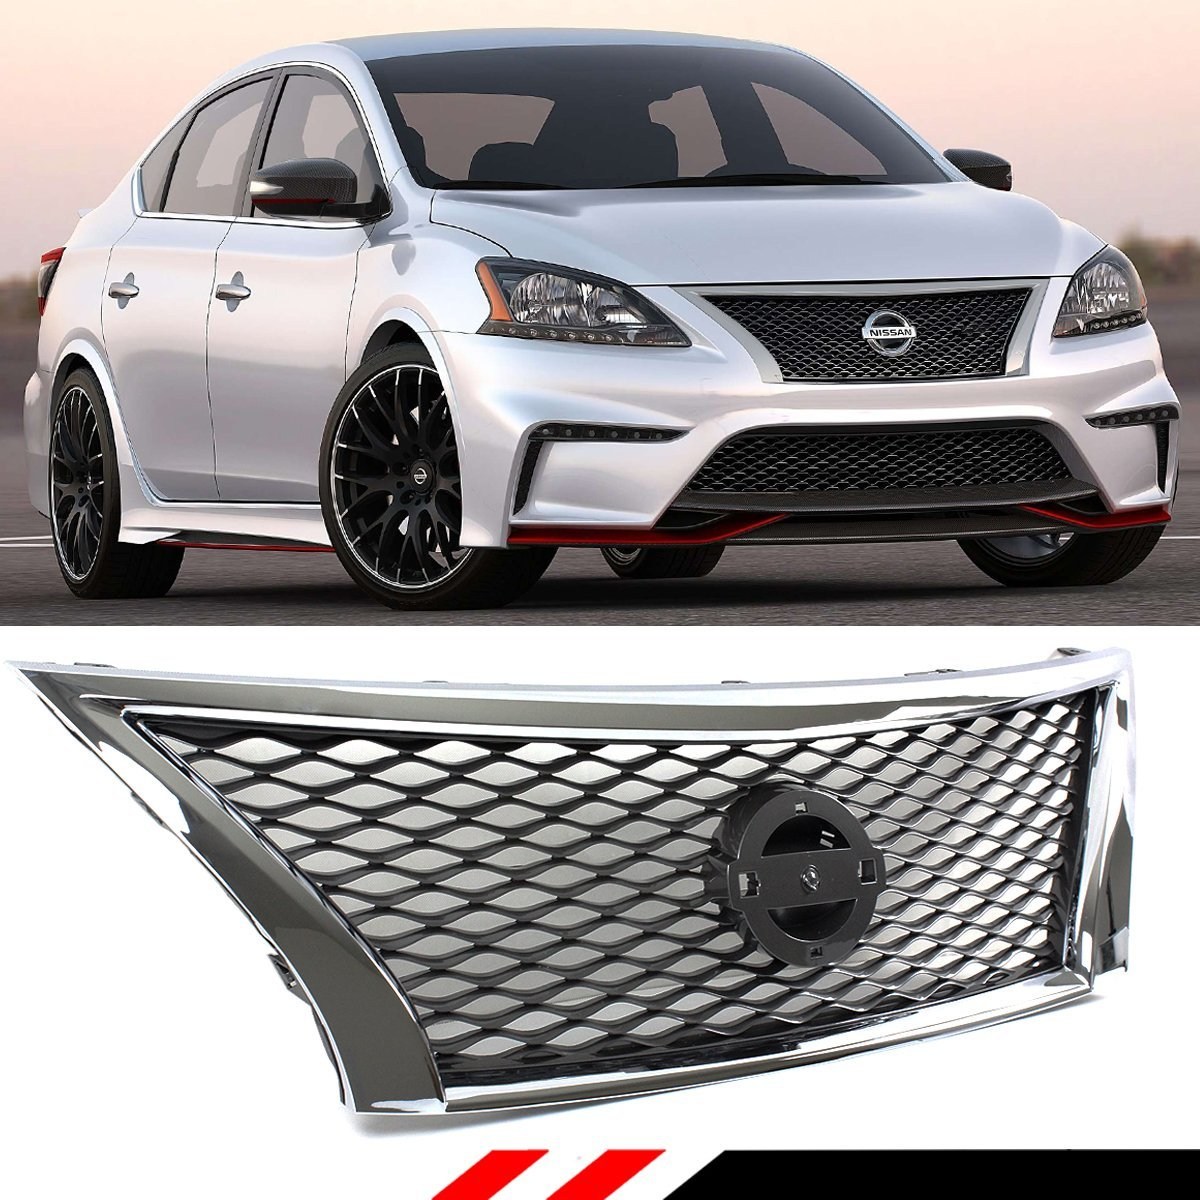 Get Quotations For 2017 Nissan Sentra B17 Front Upper Gunmetal Jdm Mesh Grill W Chrome